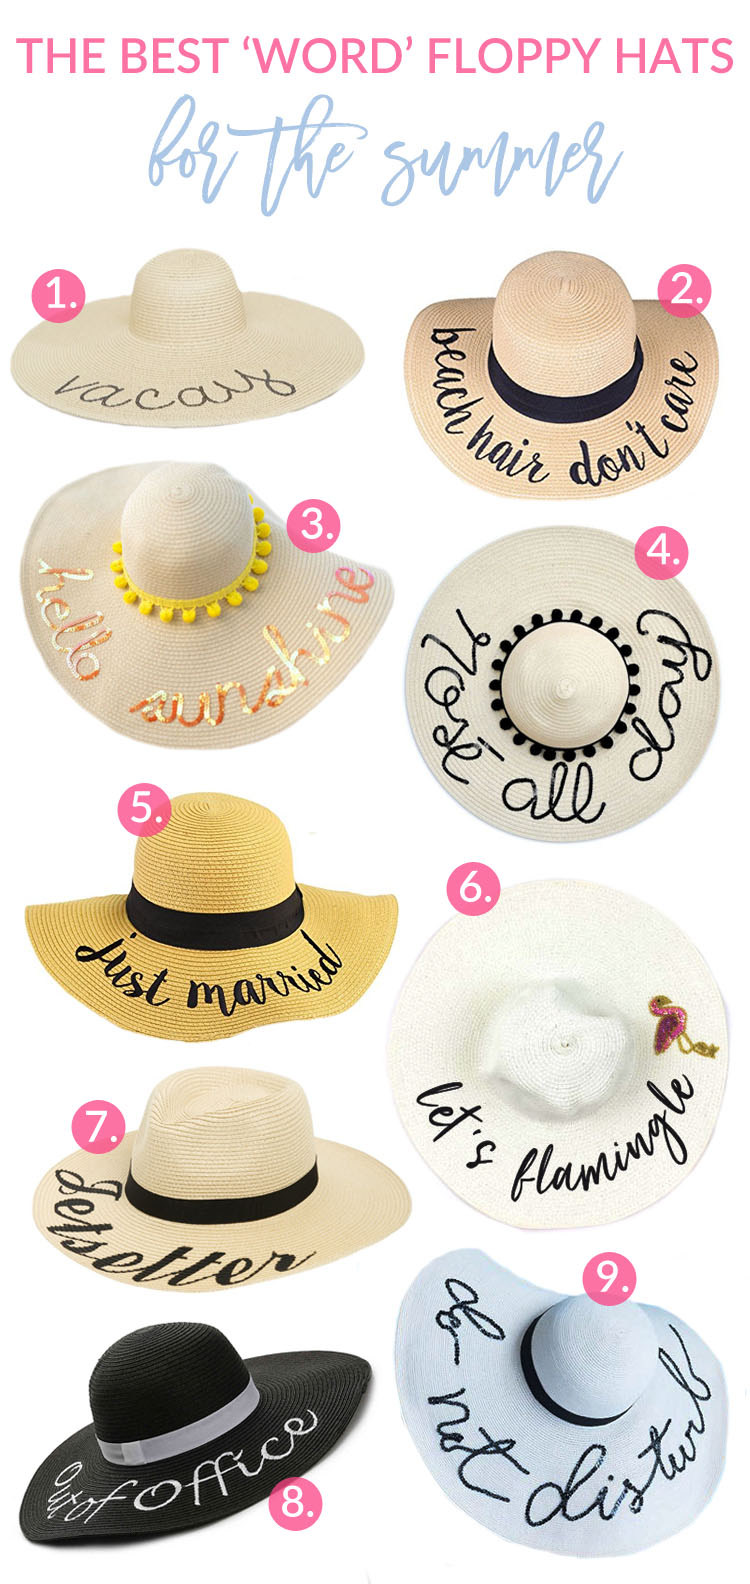 The Best Word Floppy Hats for This Summer by fashion blogger Sandy A La Mode